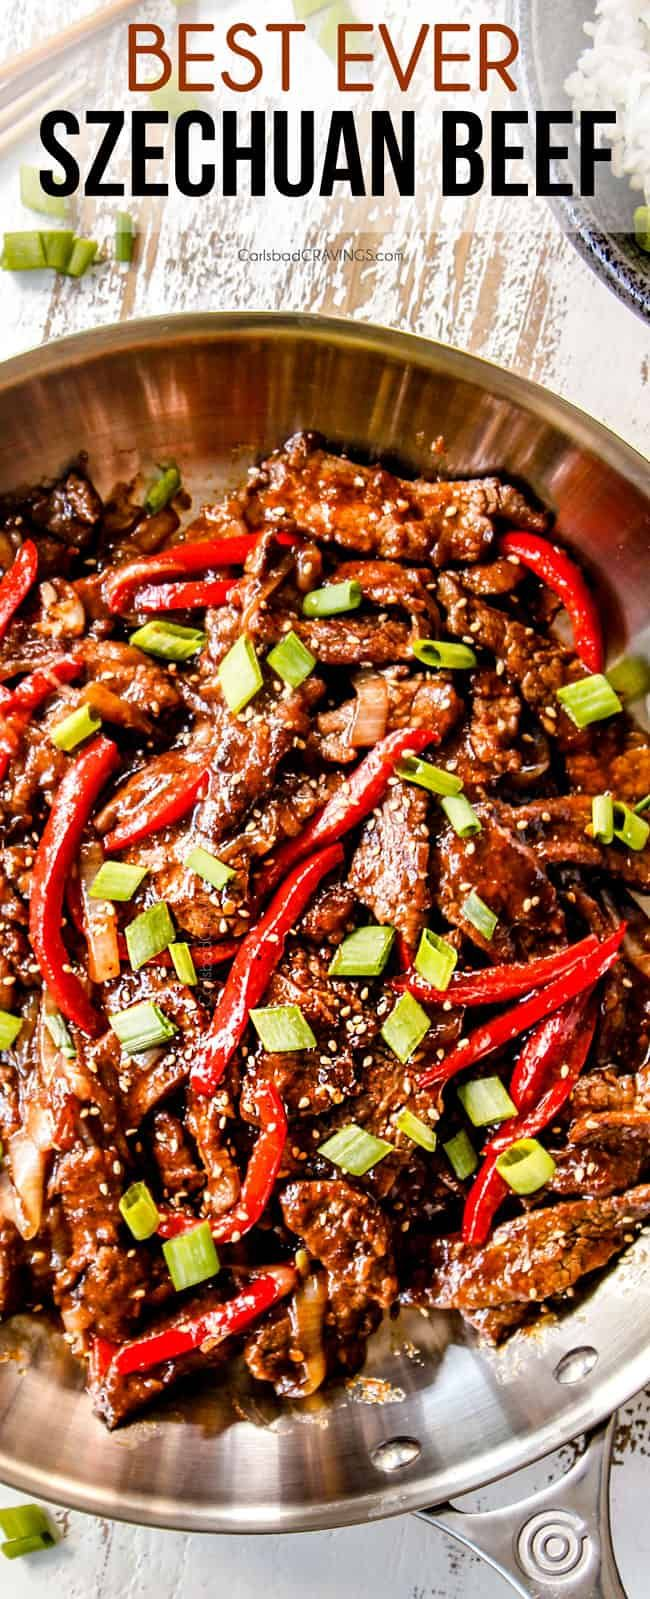 the BEST  Szechuan Beef that is easy to make but better than any restaurant!  It boasts buttery tender beef enveloped in dynamic spicy sauce you have to taste to believe!  #stirfry #beeffoodrecipes #beef #beefrecipes #chinesefoodrecipes #chinesefood #szechuan #dinner #dinnerrecipes #dinnerideas #recipes #recipeoftheday #recipeseasy     via @carlsbadcraving